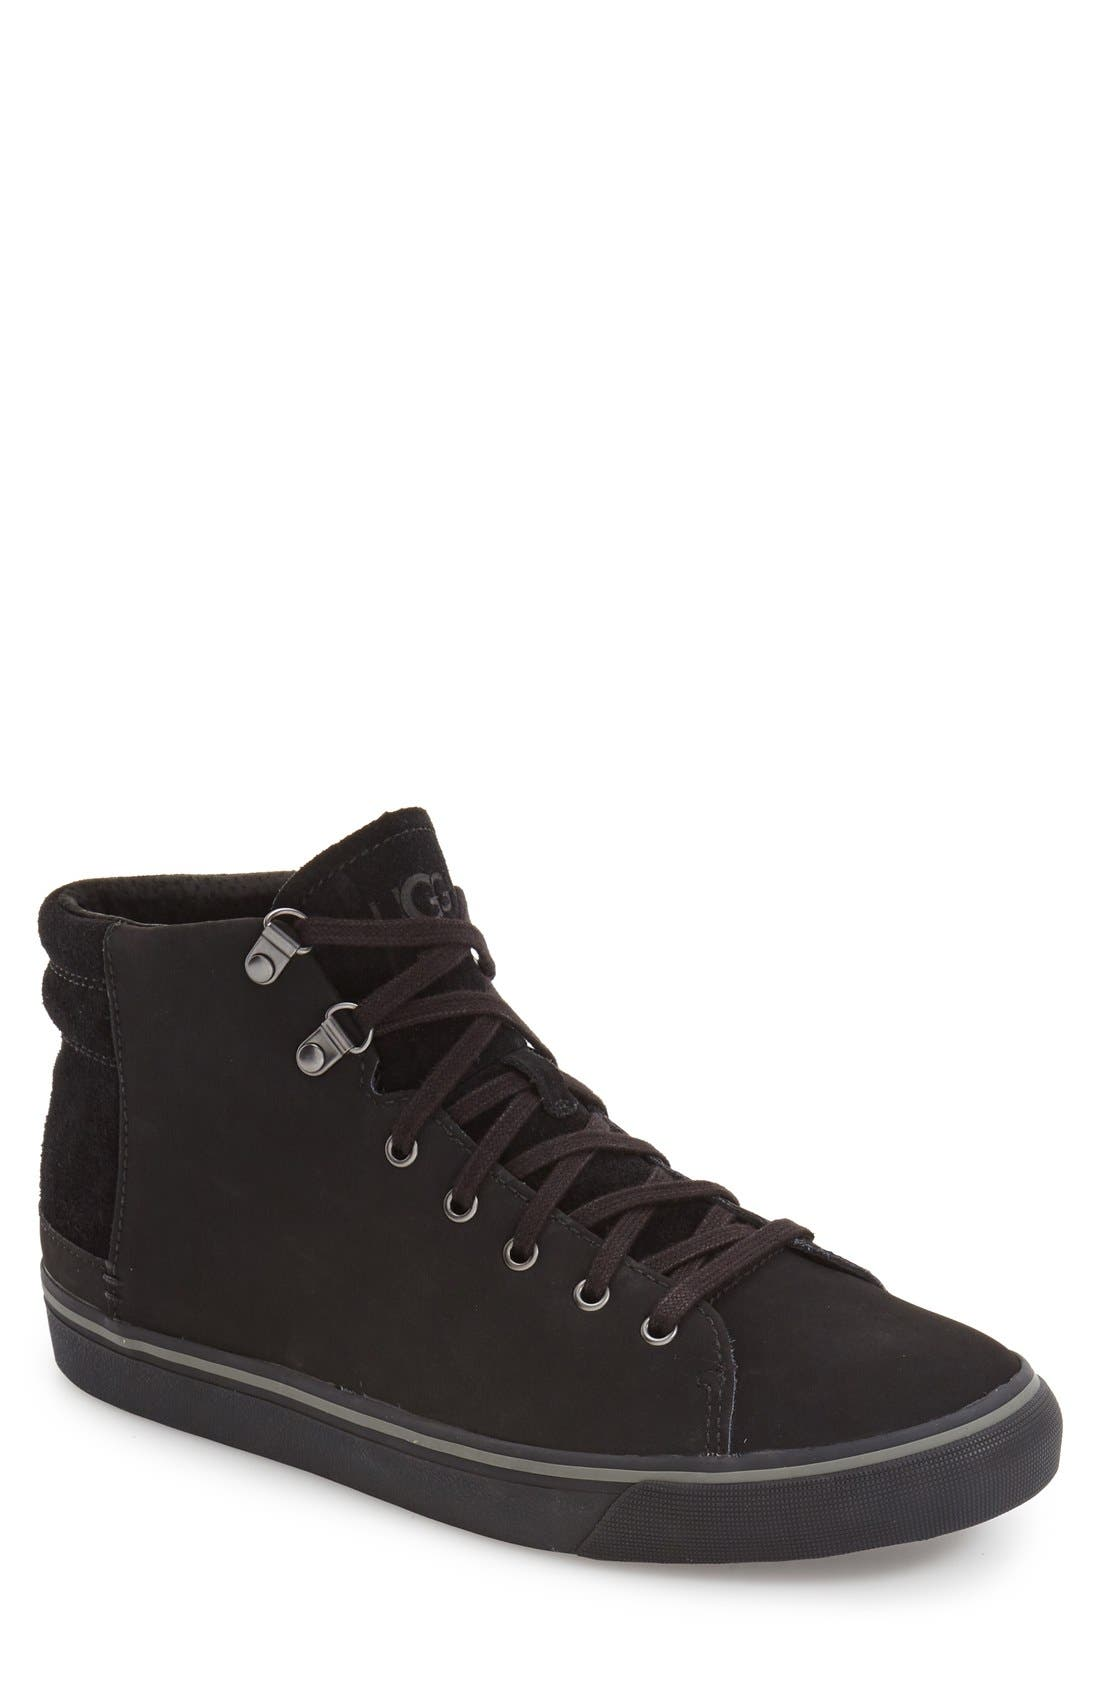 Main Image - UGG® 'Hoyt' Waterproof High Top Sneaker (Men)